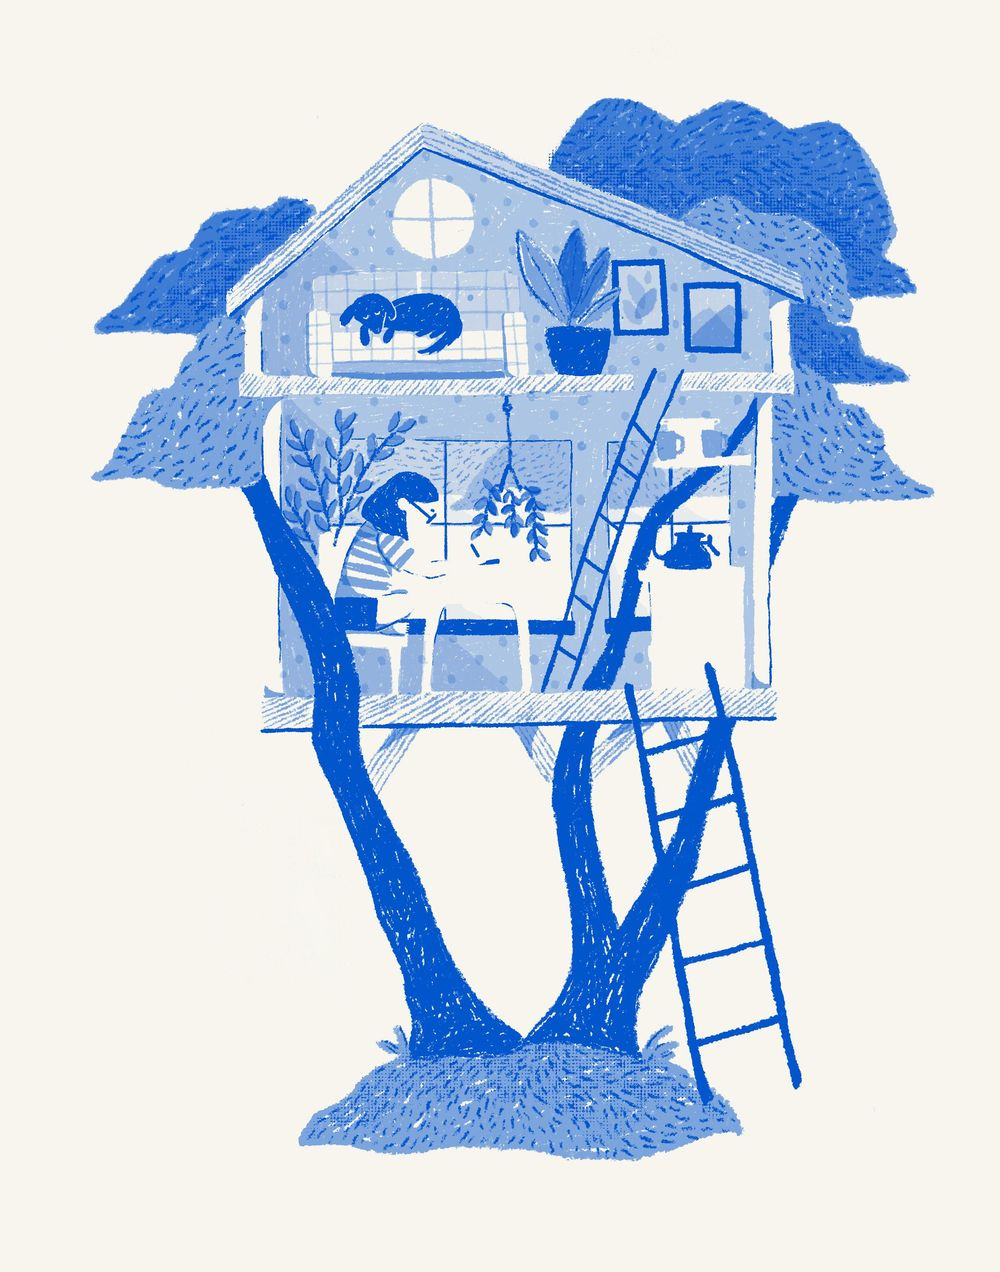 Treehouse Studio - image 2 - student project